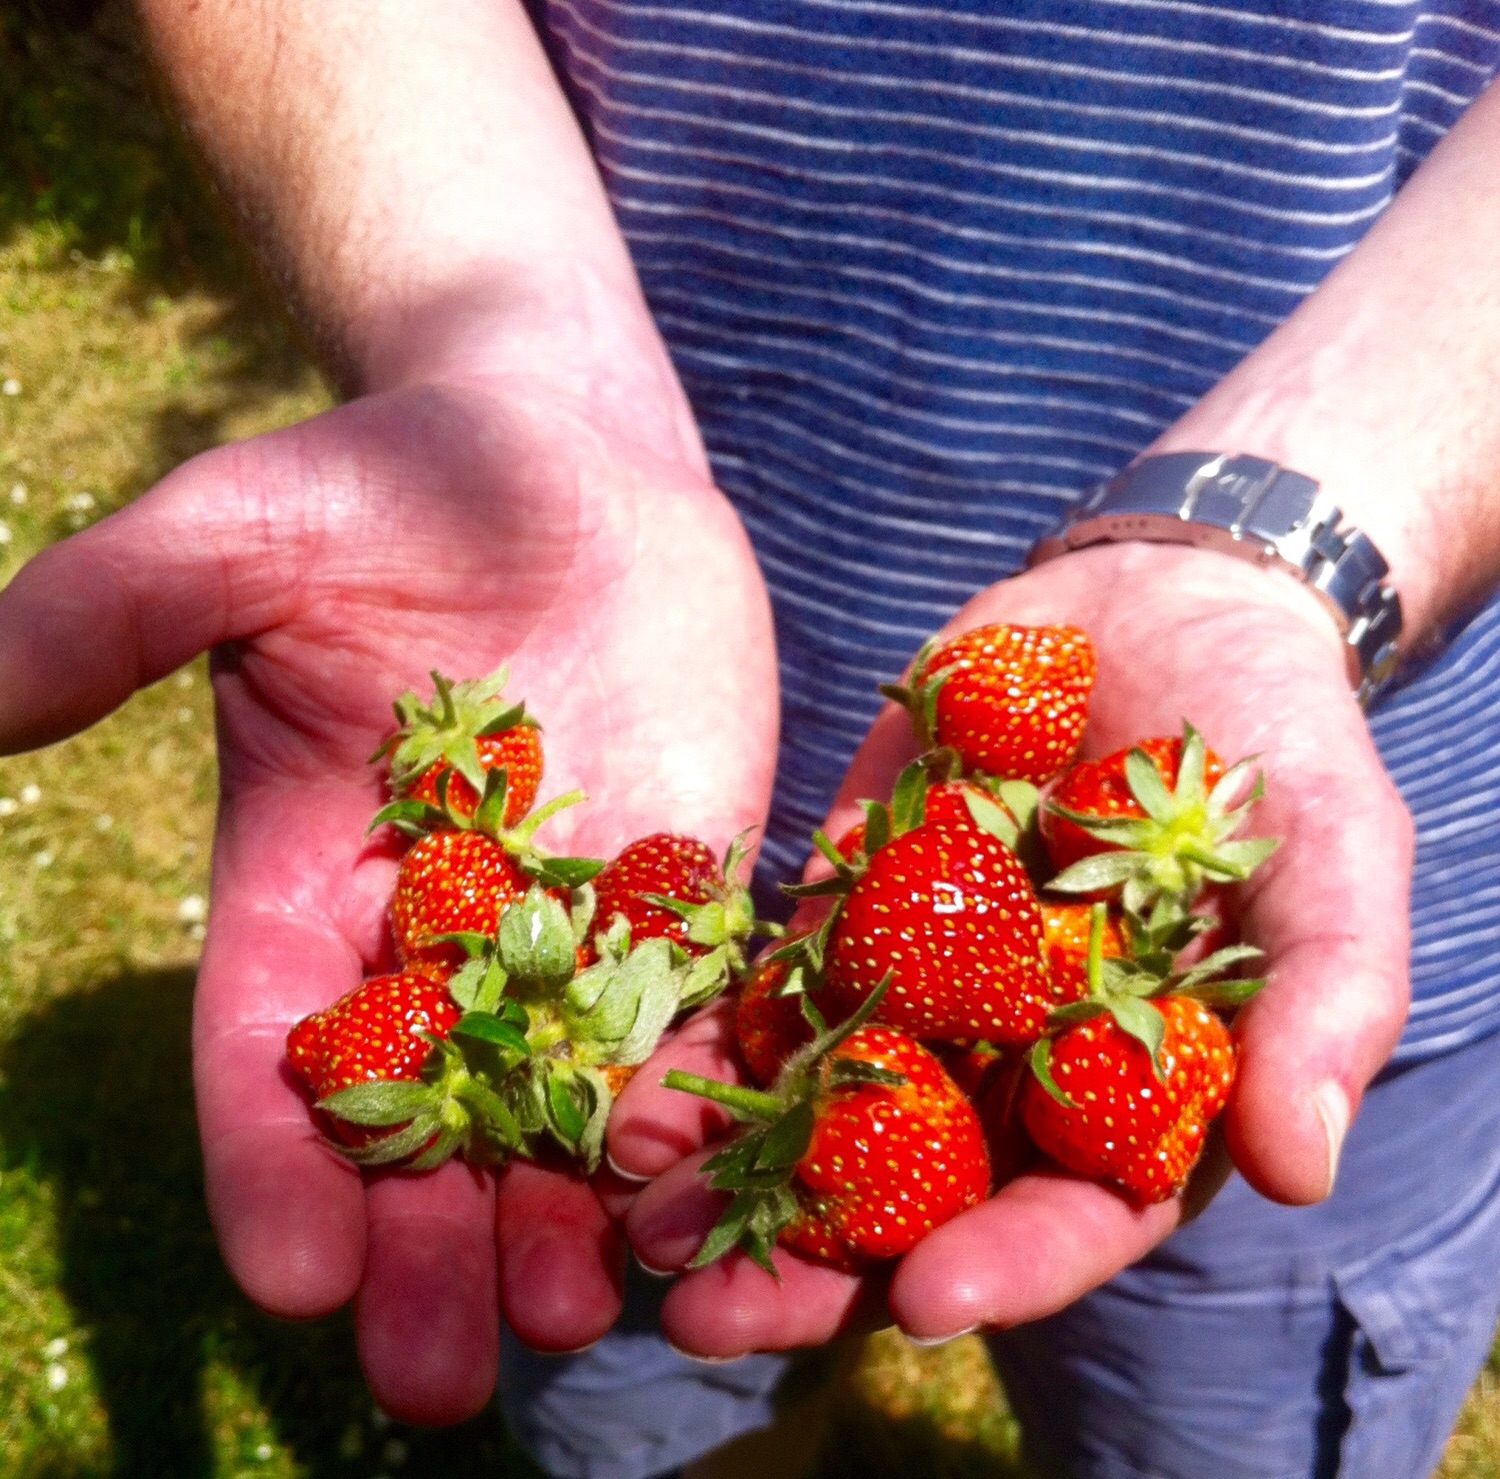 STRAWBERRIES FROM THE GARDEN